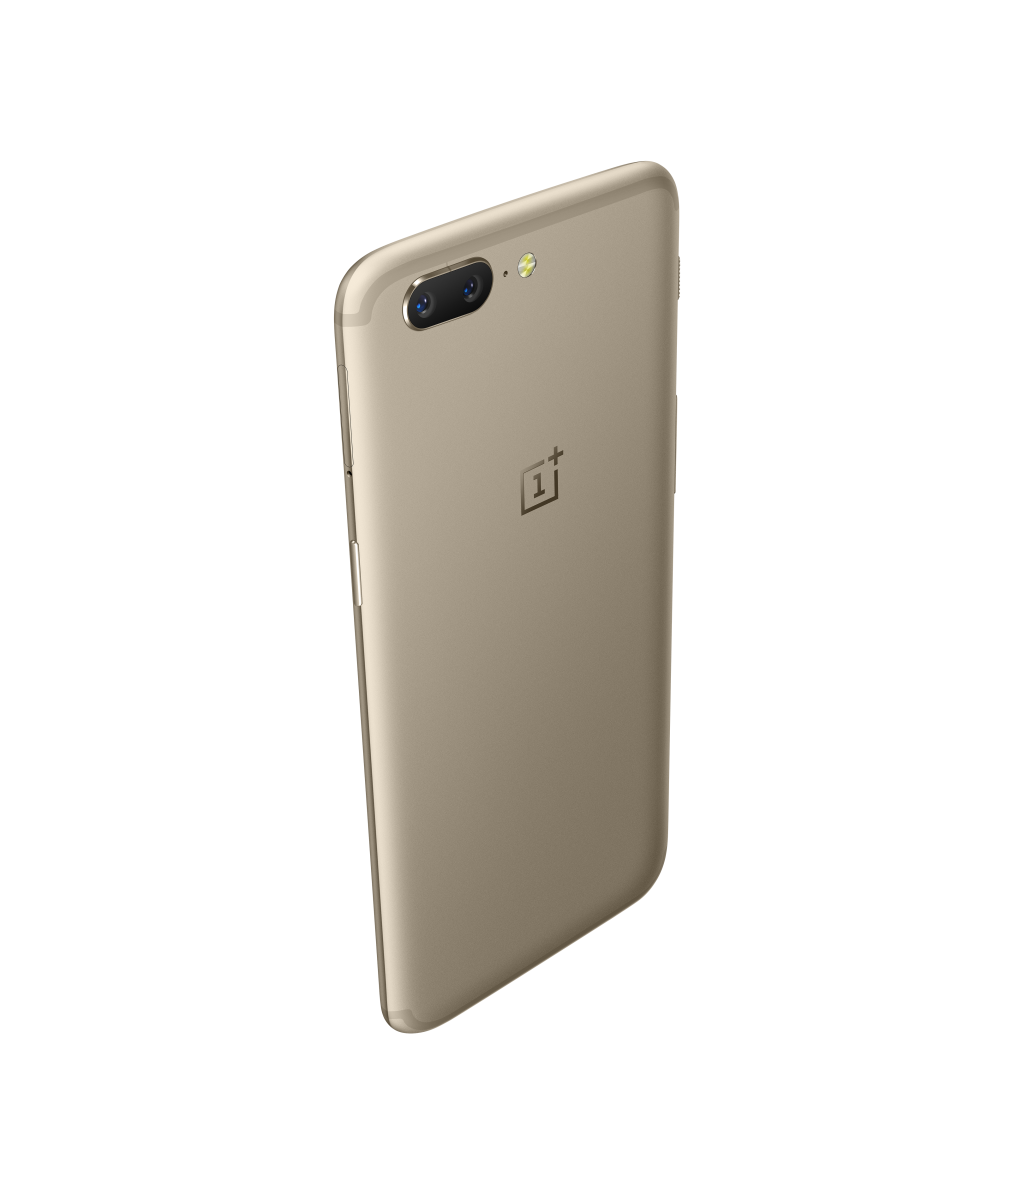 OnePlus introduces Soft Gold variant for OnePlus 5